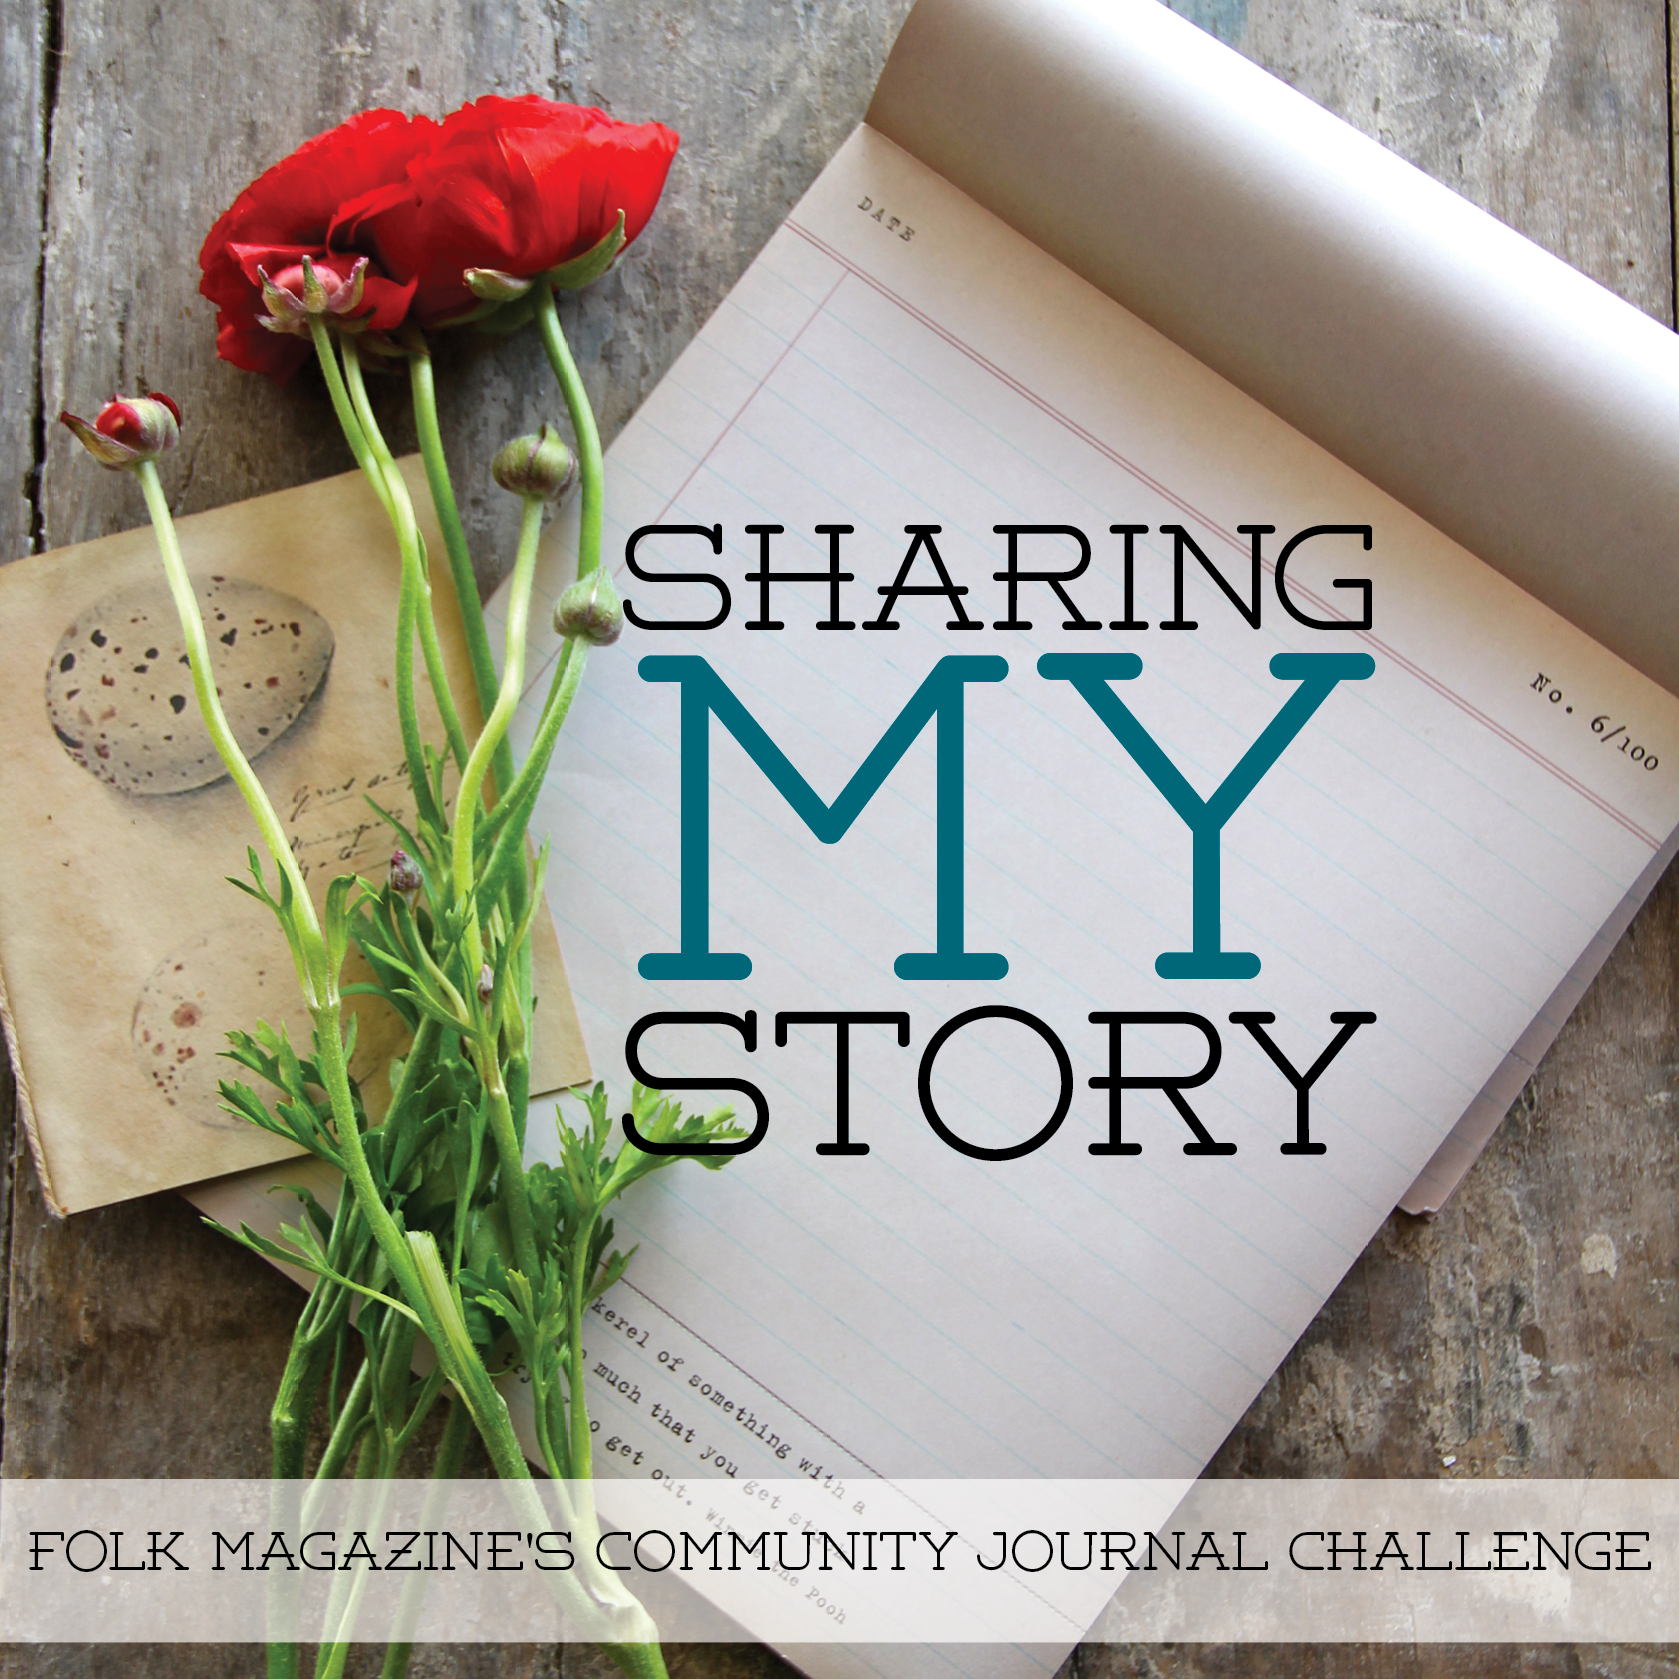 FOLK-sharemystory3